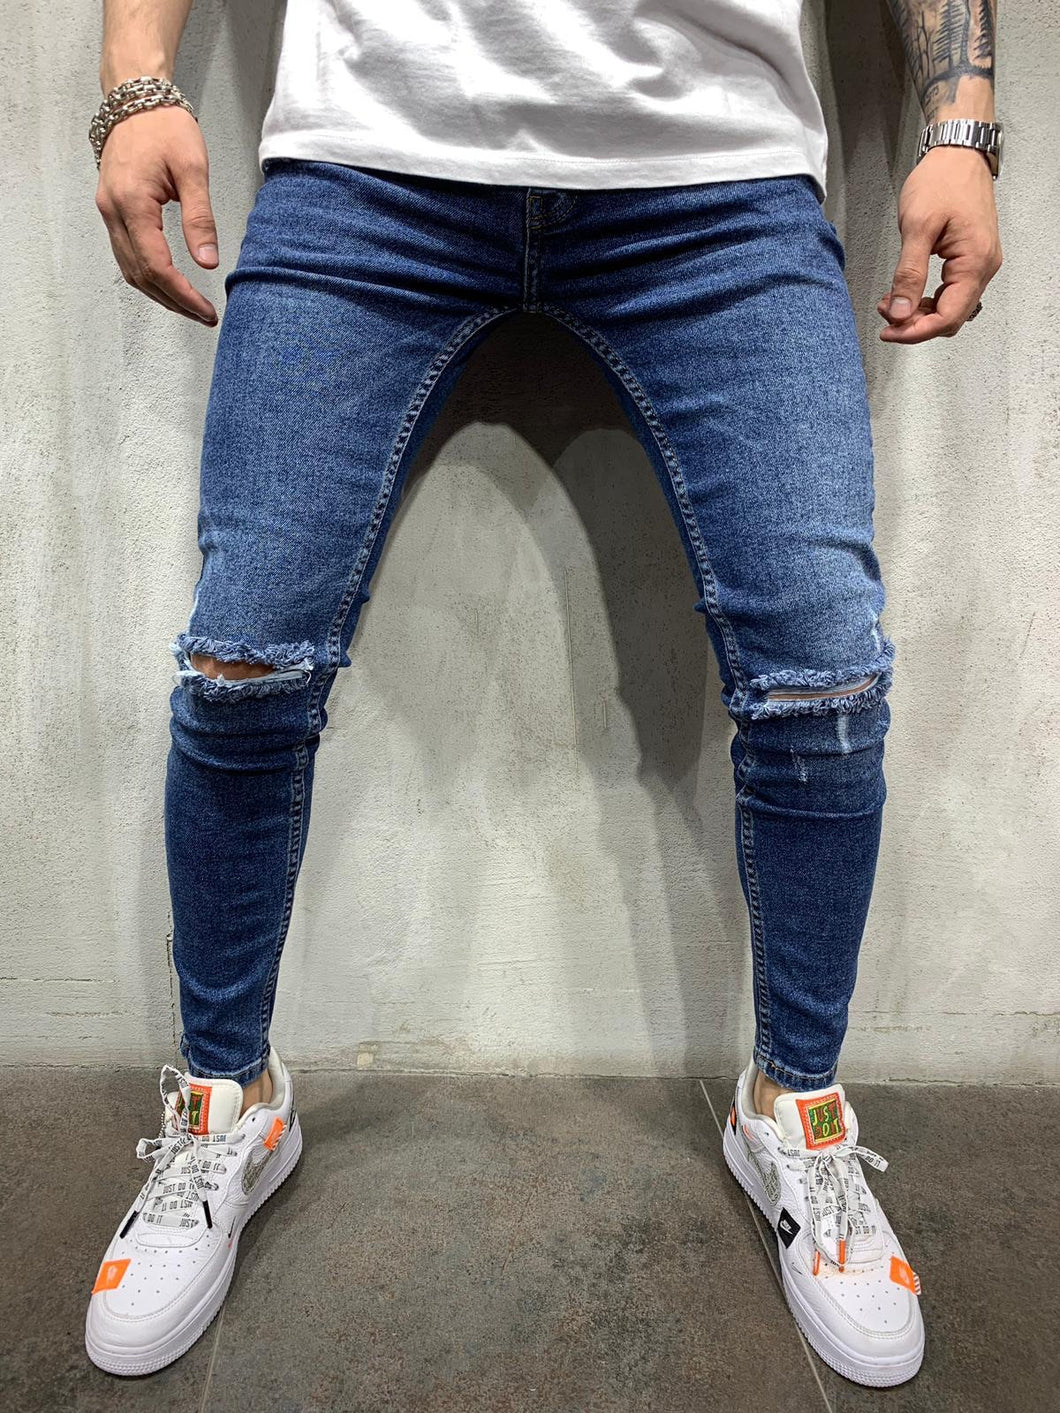 Dark Blue Ripped Jeans Slim Fit Mens Jeans AY514 Streetwear Mens Jeans - Sneakerjeans